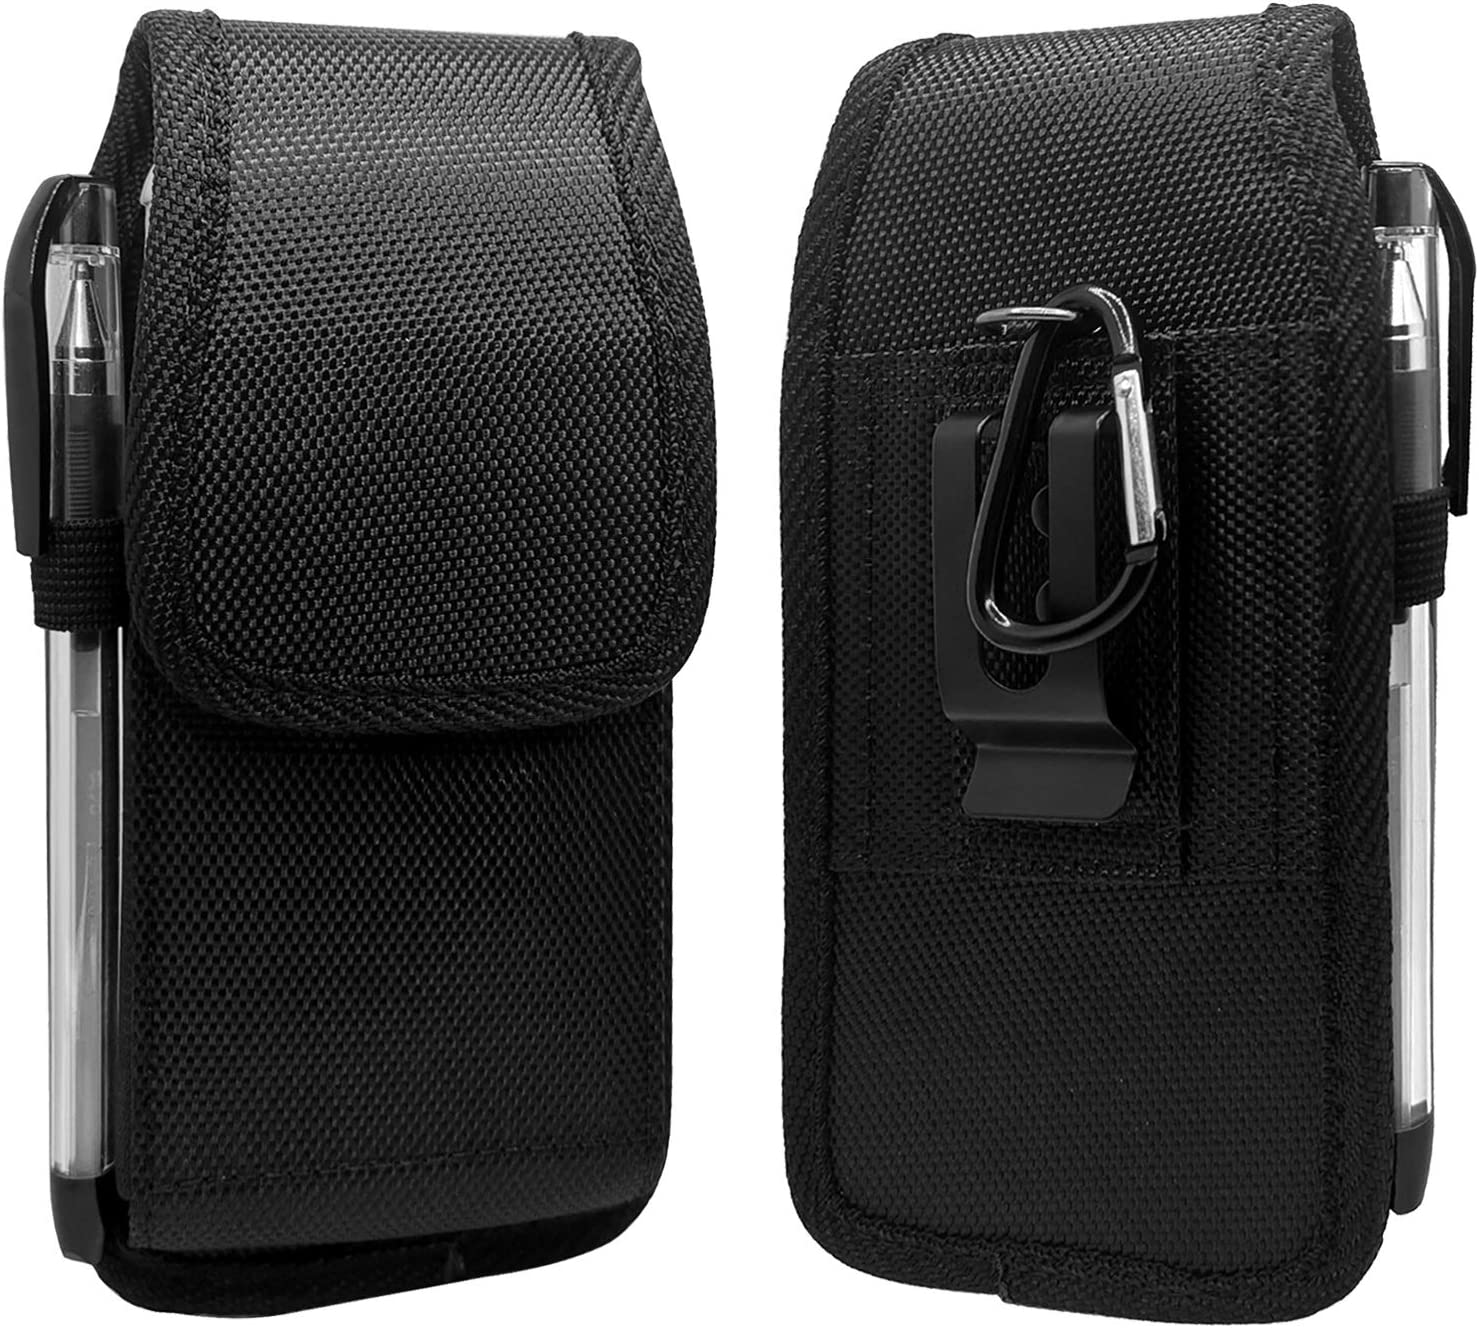 SZCINSEN Cell Phone Holster for iPhone 12 Pro 12 11 XR,for Samsung S21 5G,Note10, S20, S7 Edge, A41 Belt Clip Phone Pouch Bag Carry Case with Pen Holder